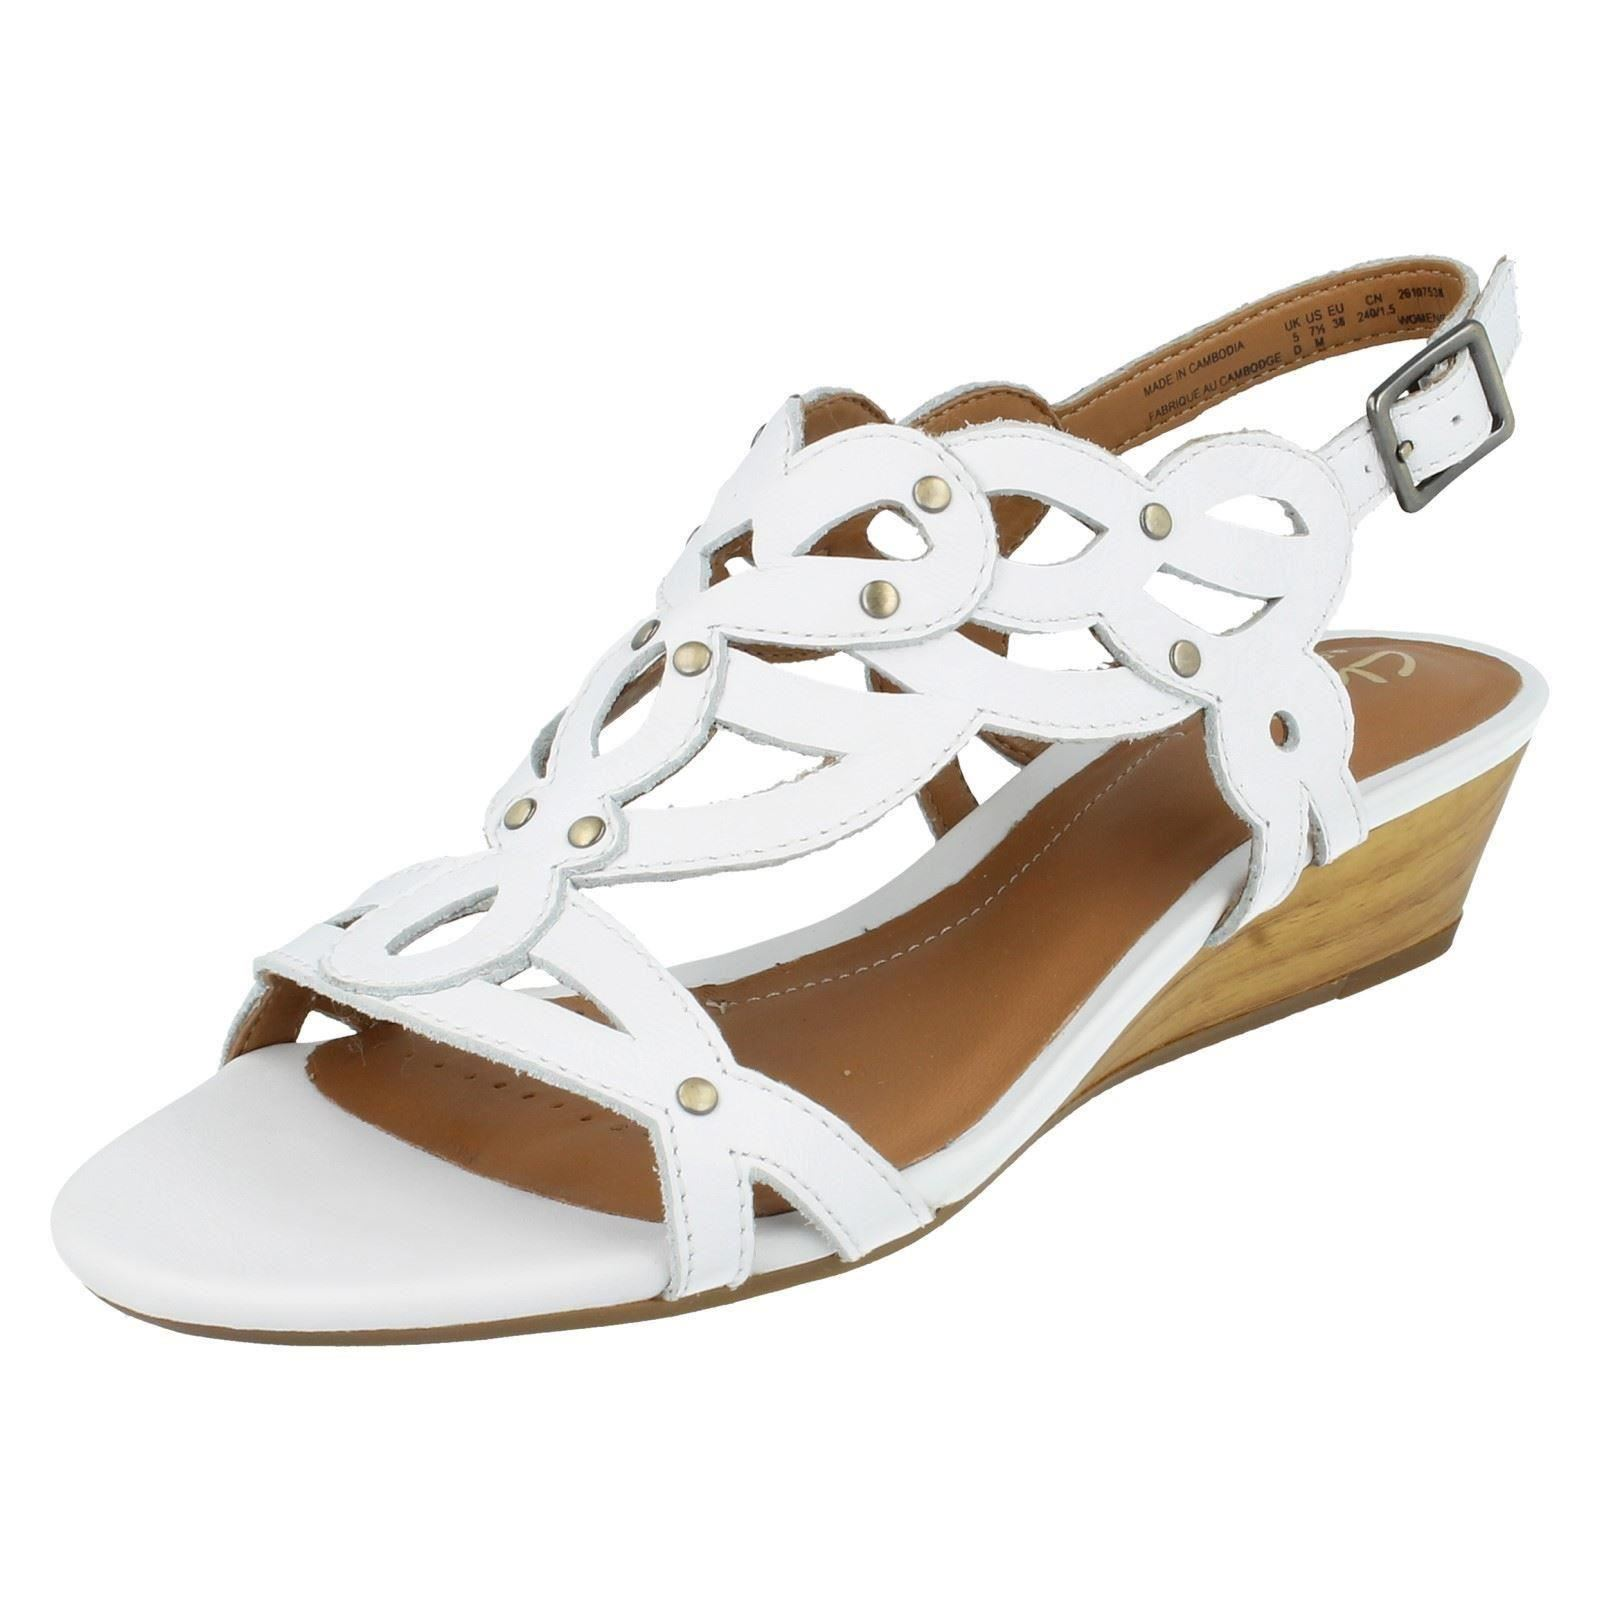 22f2e1659ba Clarks Womens Playful Tunes Leather Sandals in White 28c08 8 D. About this  product. Picture 1 of 9  Picture 2 of 9 ...